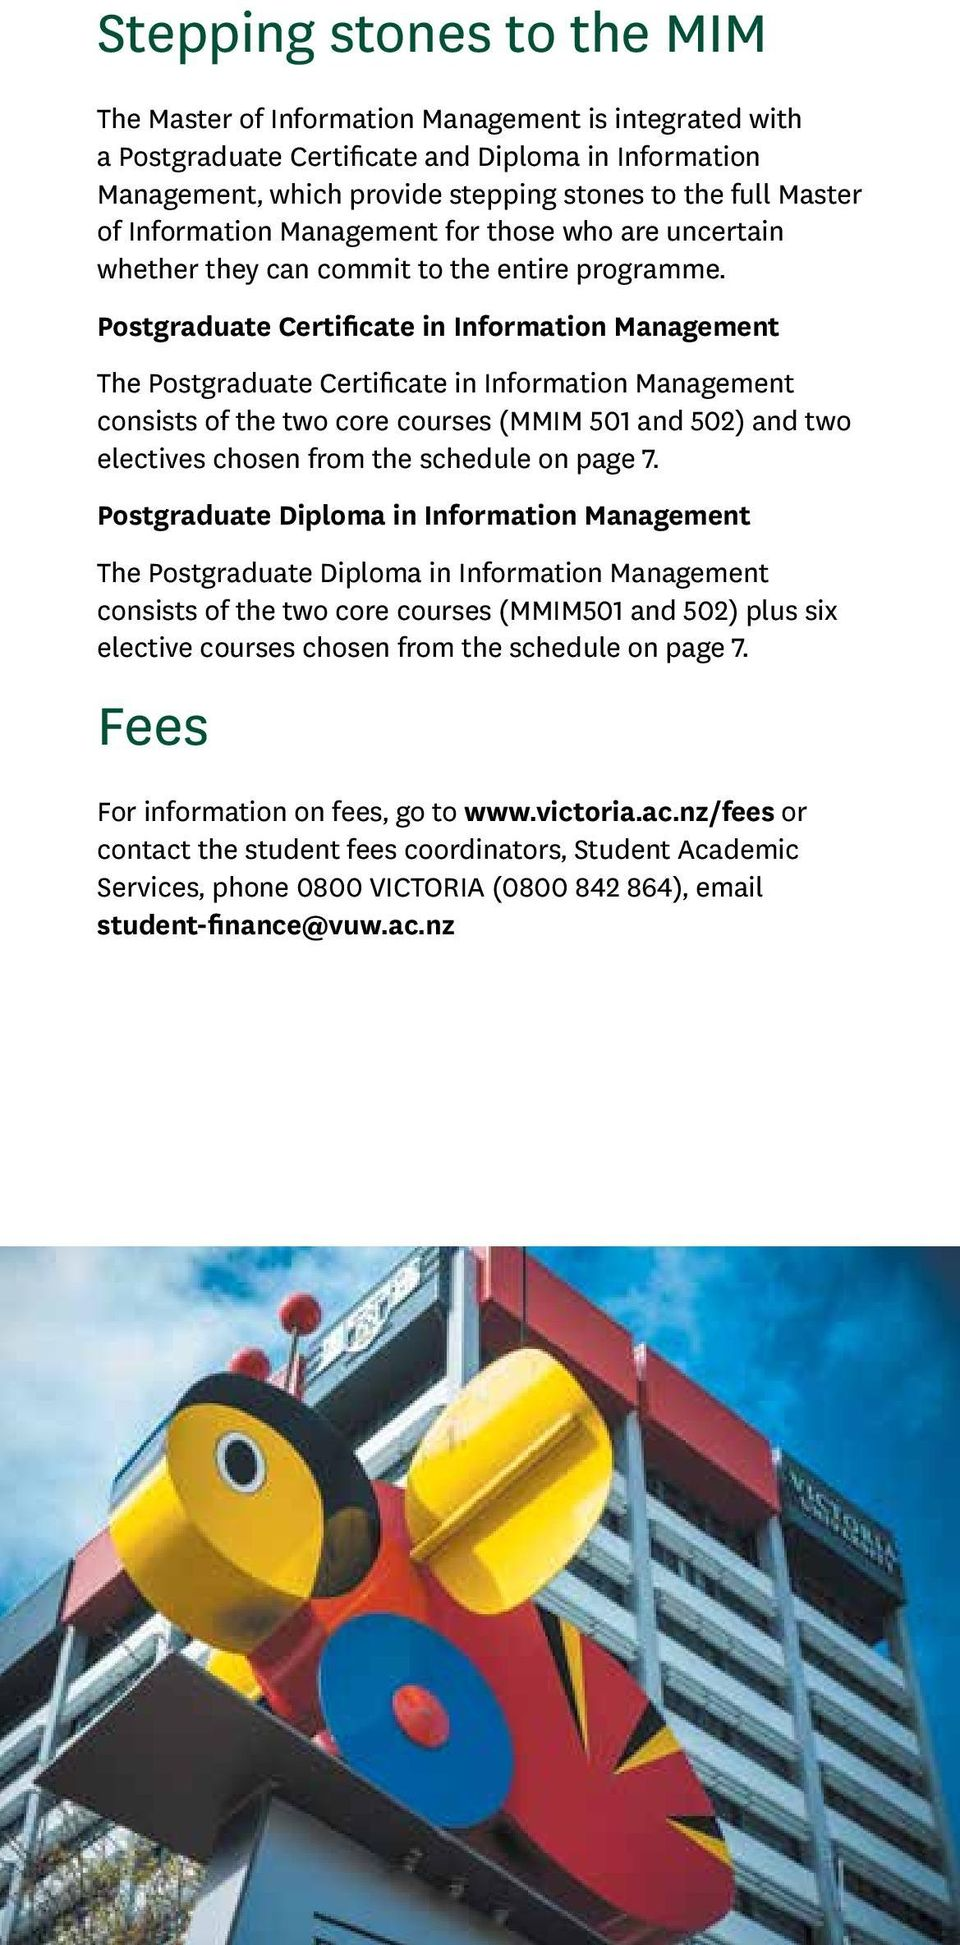 Postgraduate Certificate in Information Management The Postgraduate Certificate in Information Management consists of the two core courses (MMIM 501 and 502) and two electives chosen from the